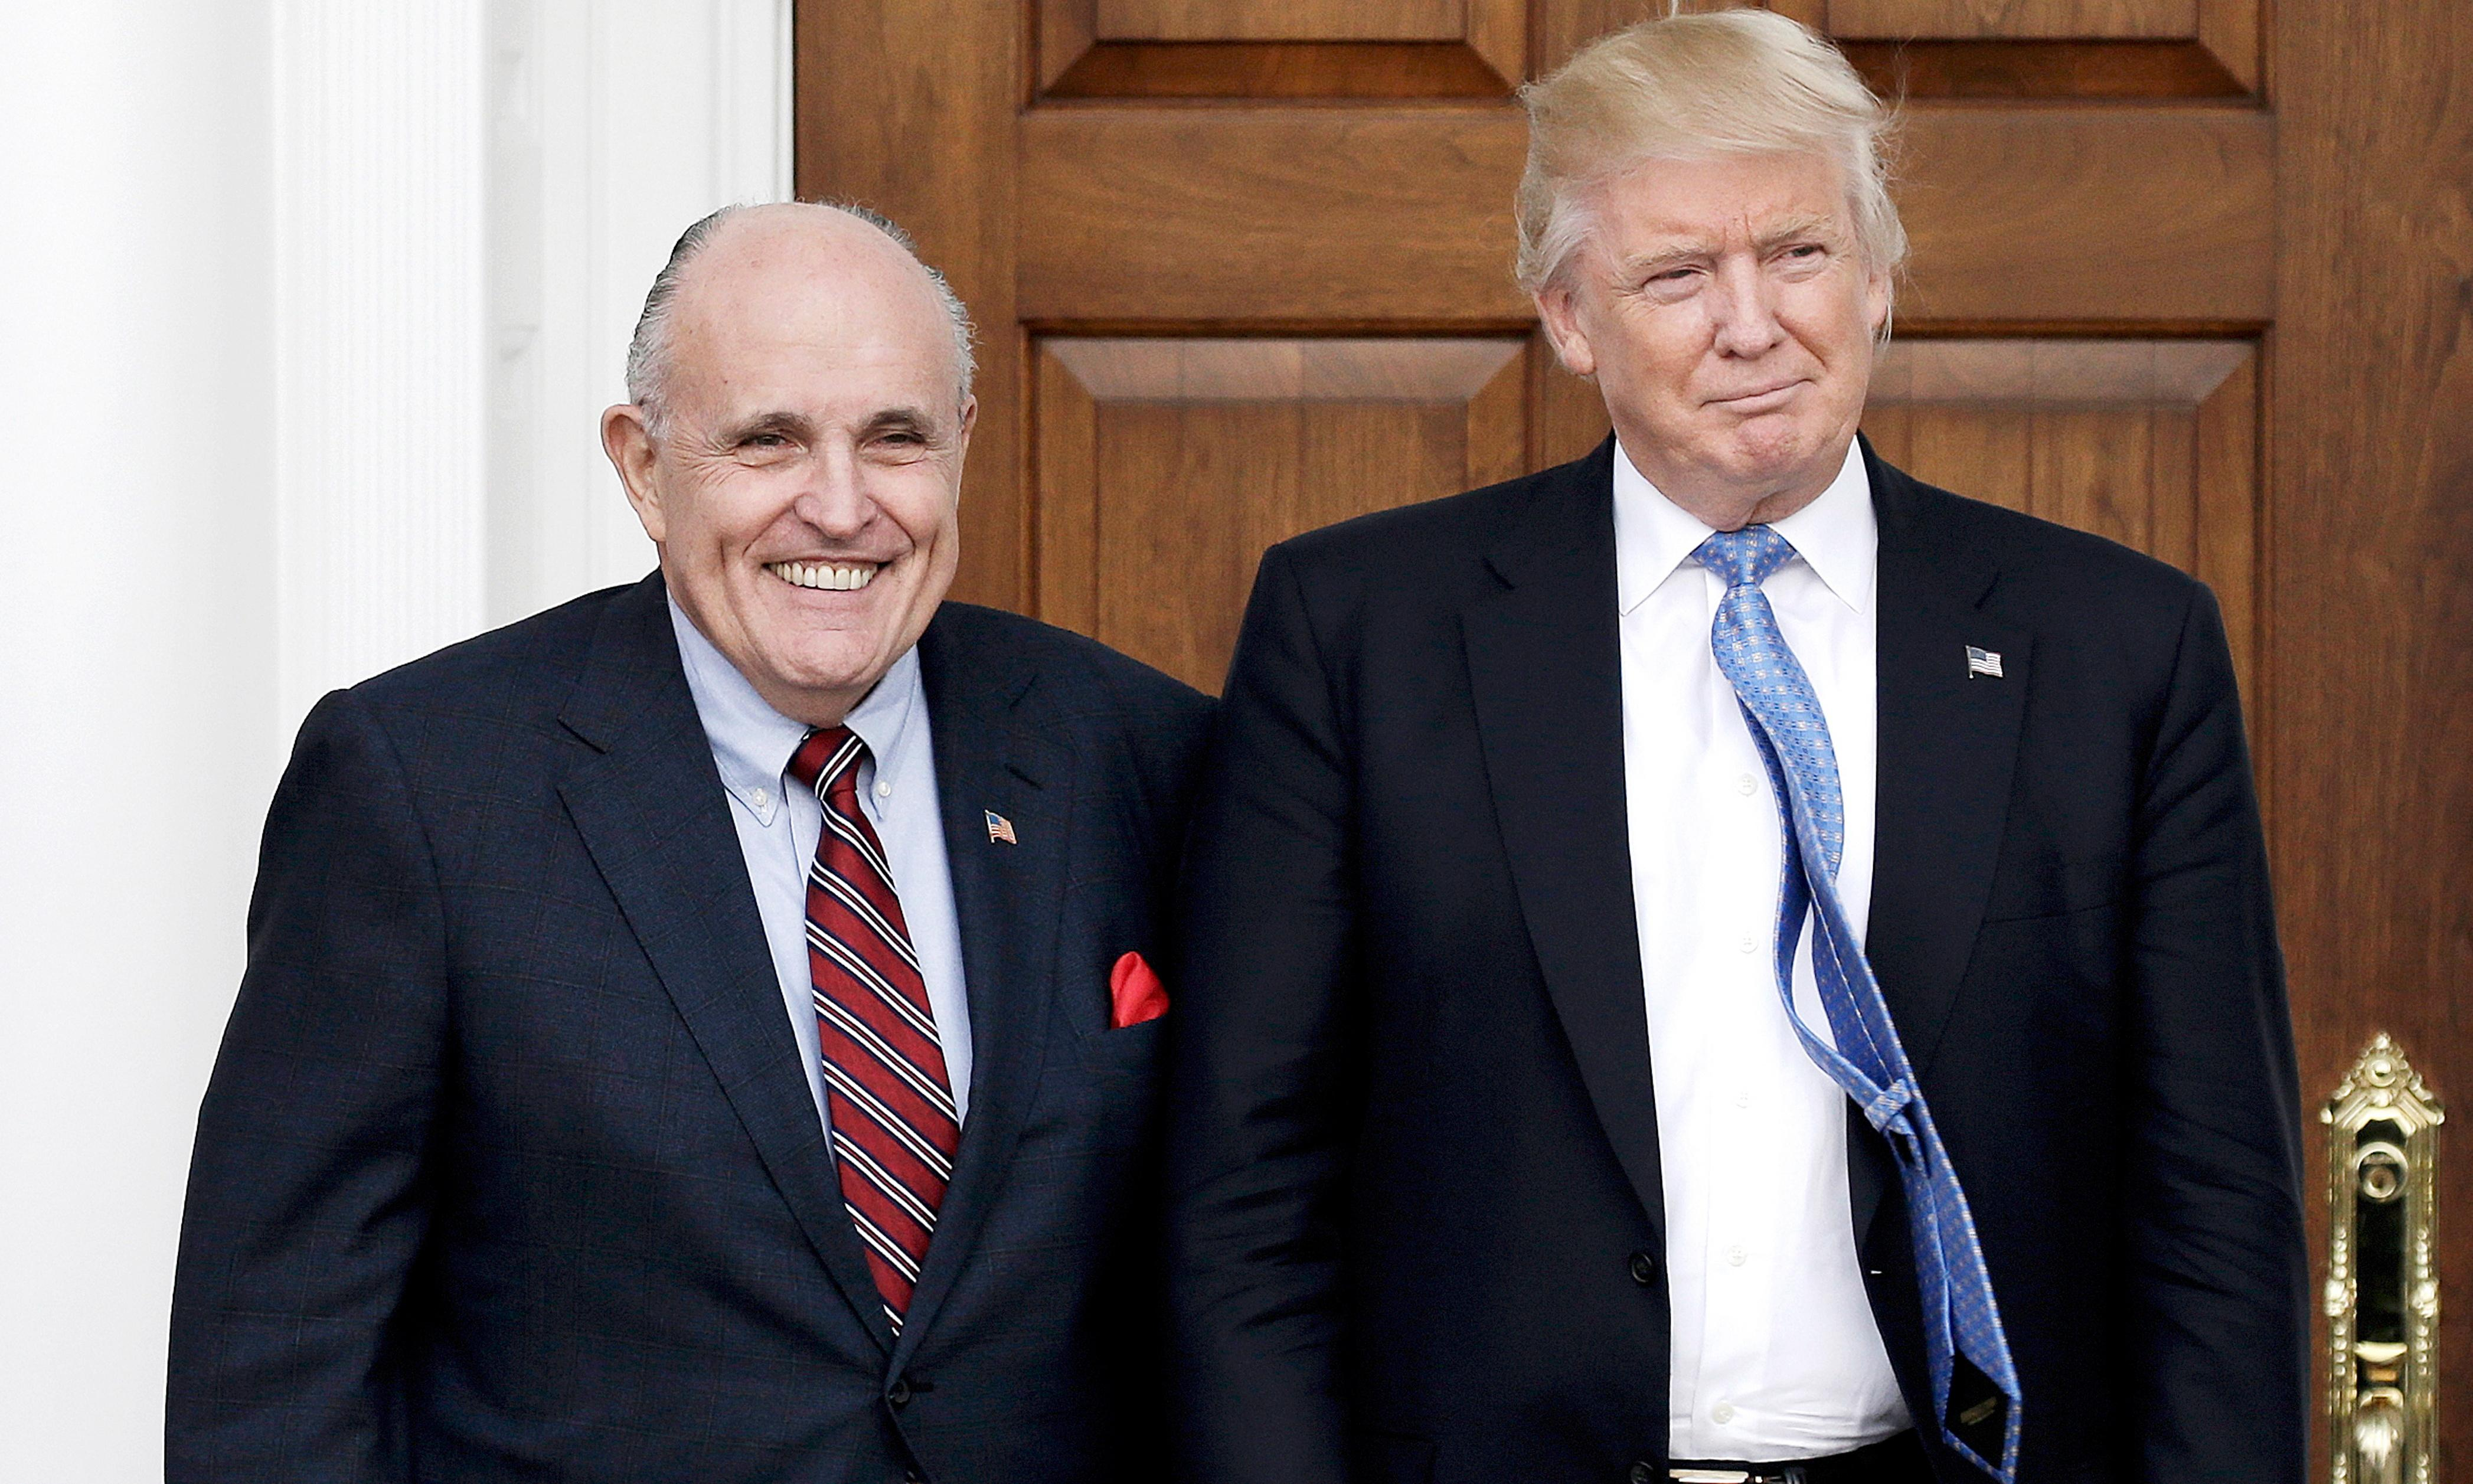 Rudy Giuliani says Trump will stay loyal to him but jokes that he has 'insurance'